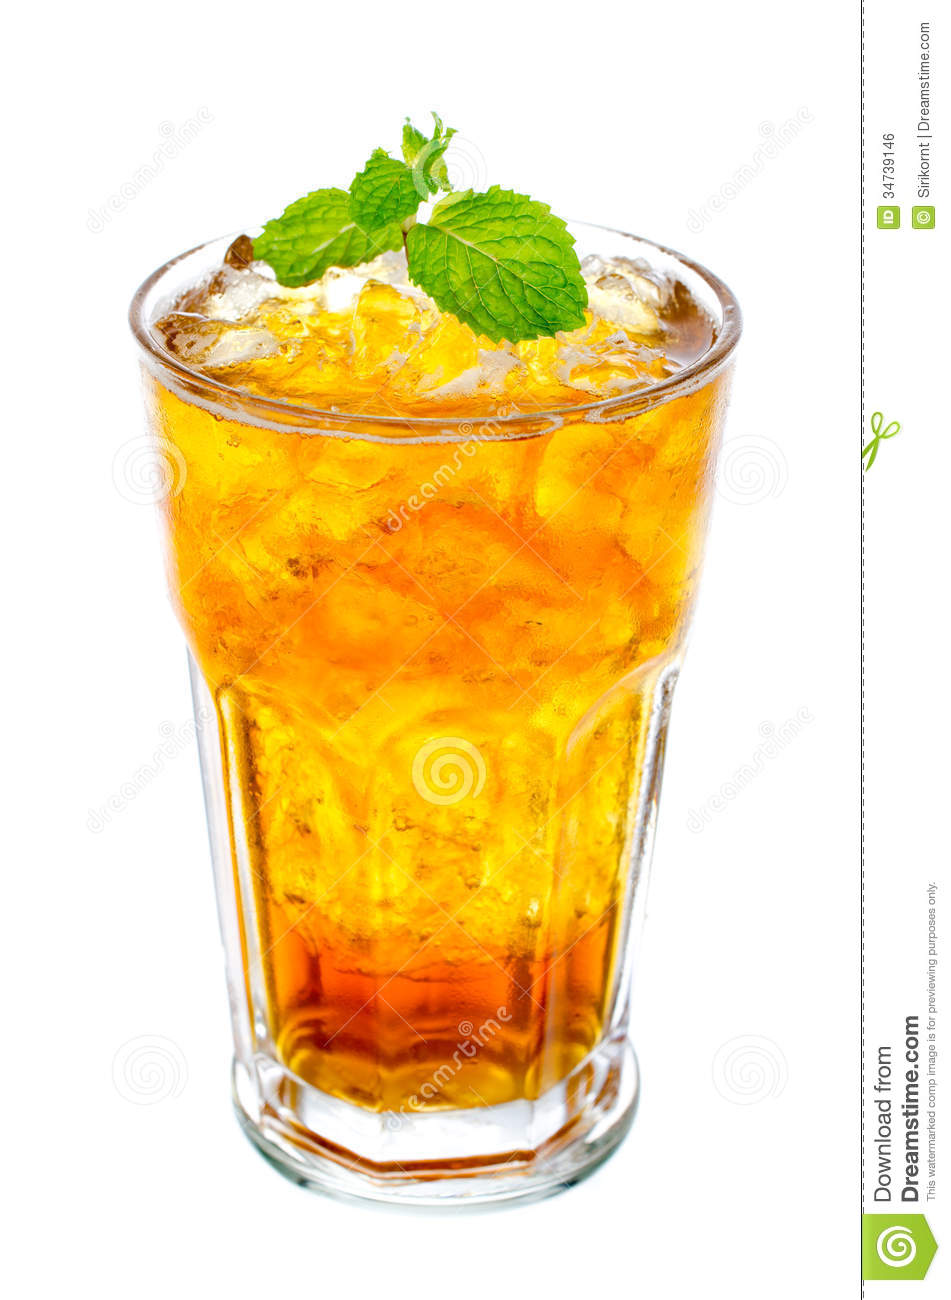 How To Make Iced Tea - YouTube